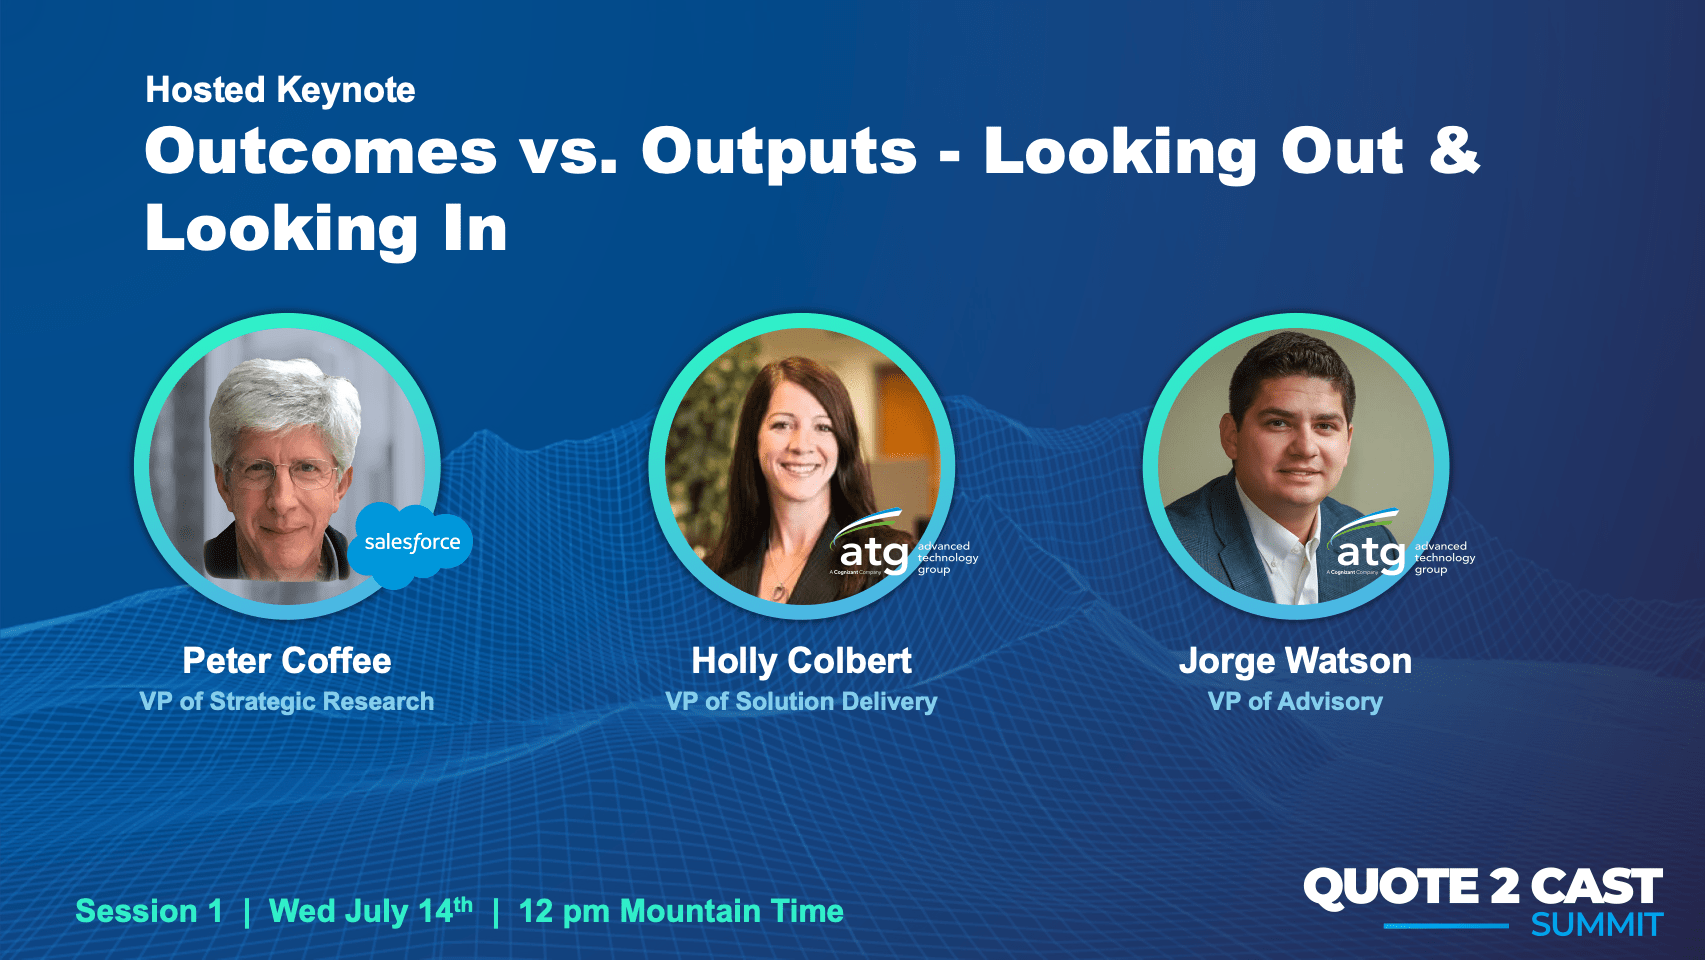 Q2Cast 2021: Outcomes vs. Outputs – Looking Out & Looking In